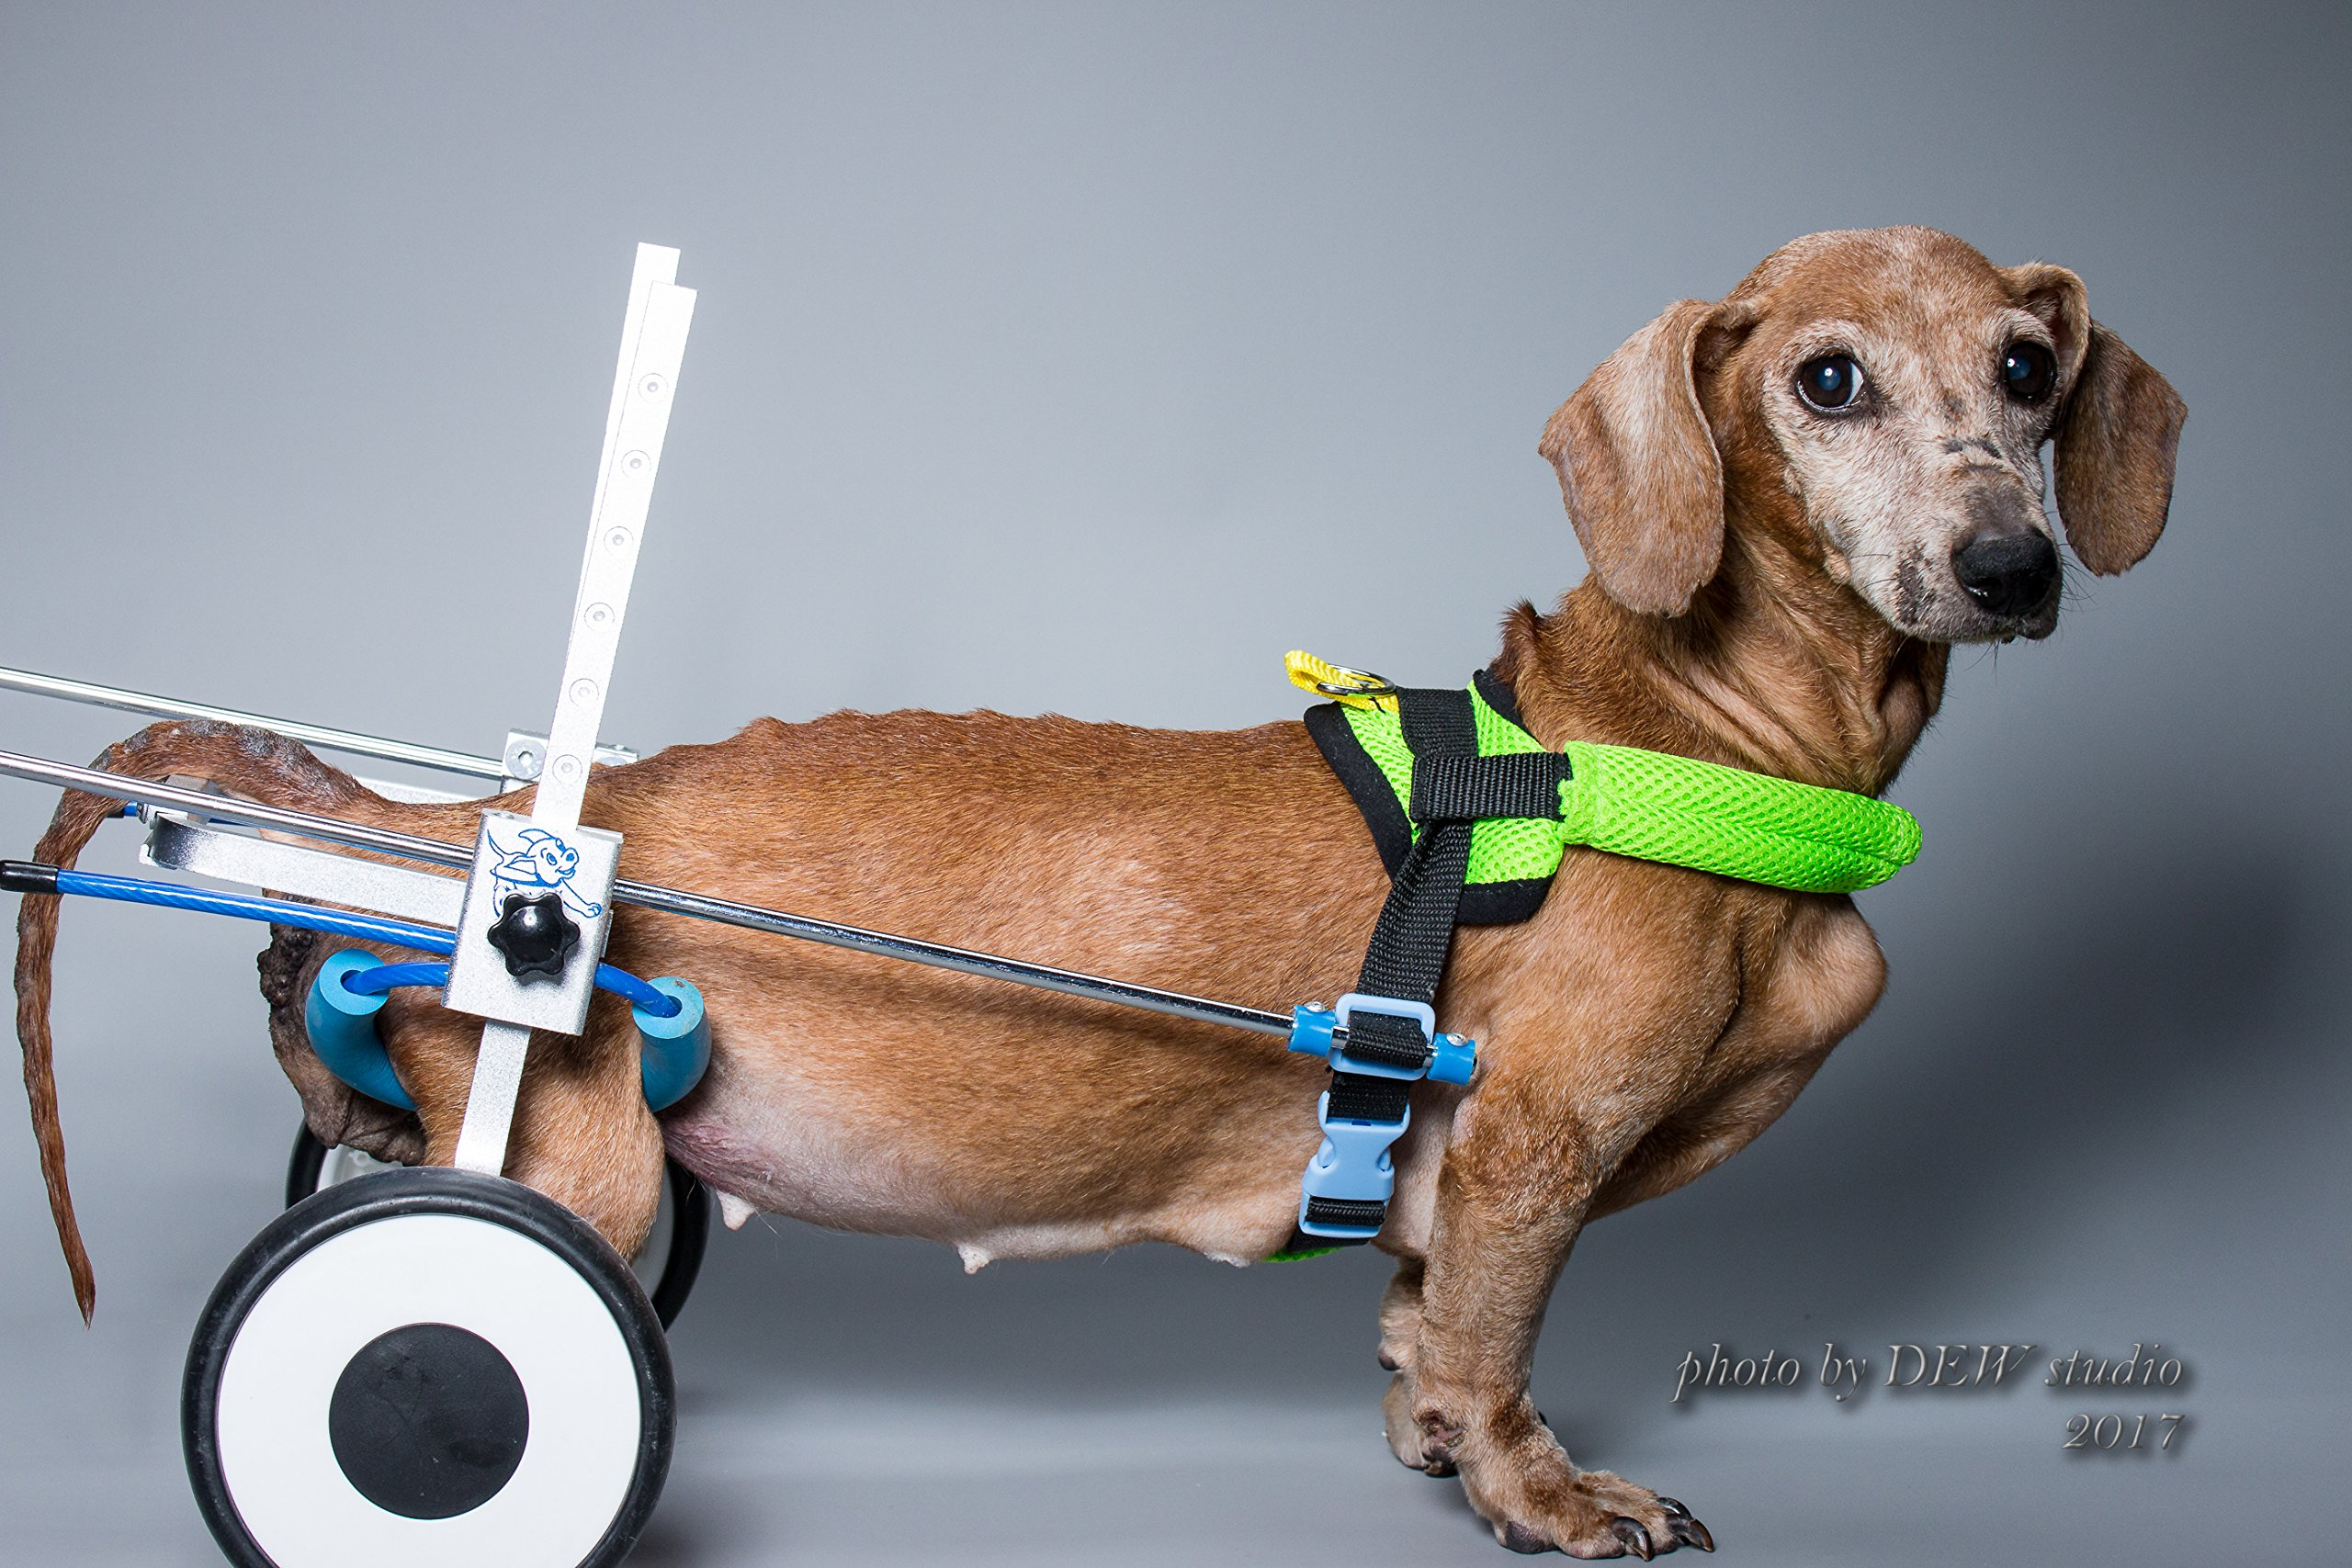 New!!! XS-LW: special for Corgi, Dachshund, Basset,Adjustable Dog Pet Wheelchair, Hind legs Rehabilitation, 7 SIZES , Dog Cart ,Wheels (including belly band for spine protection, dog leash